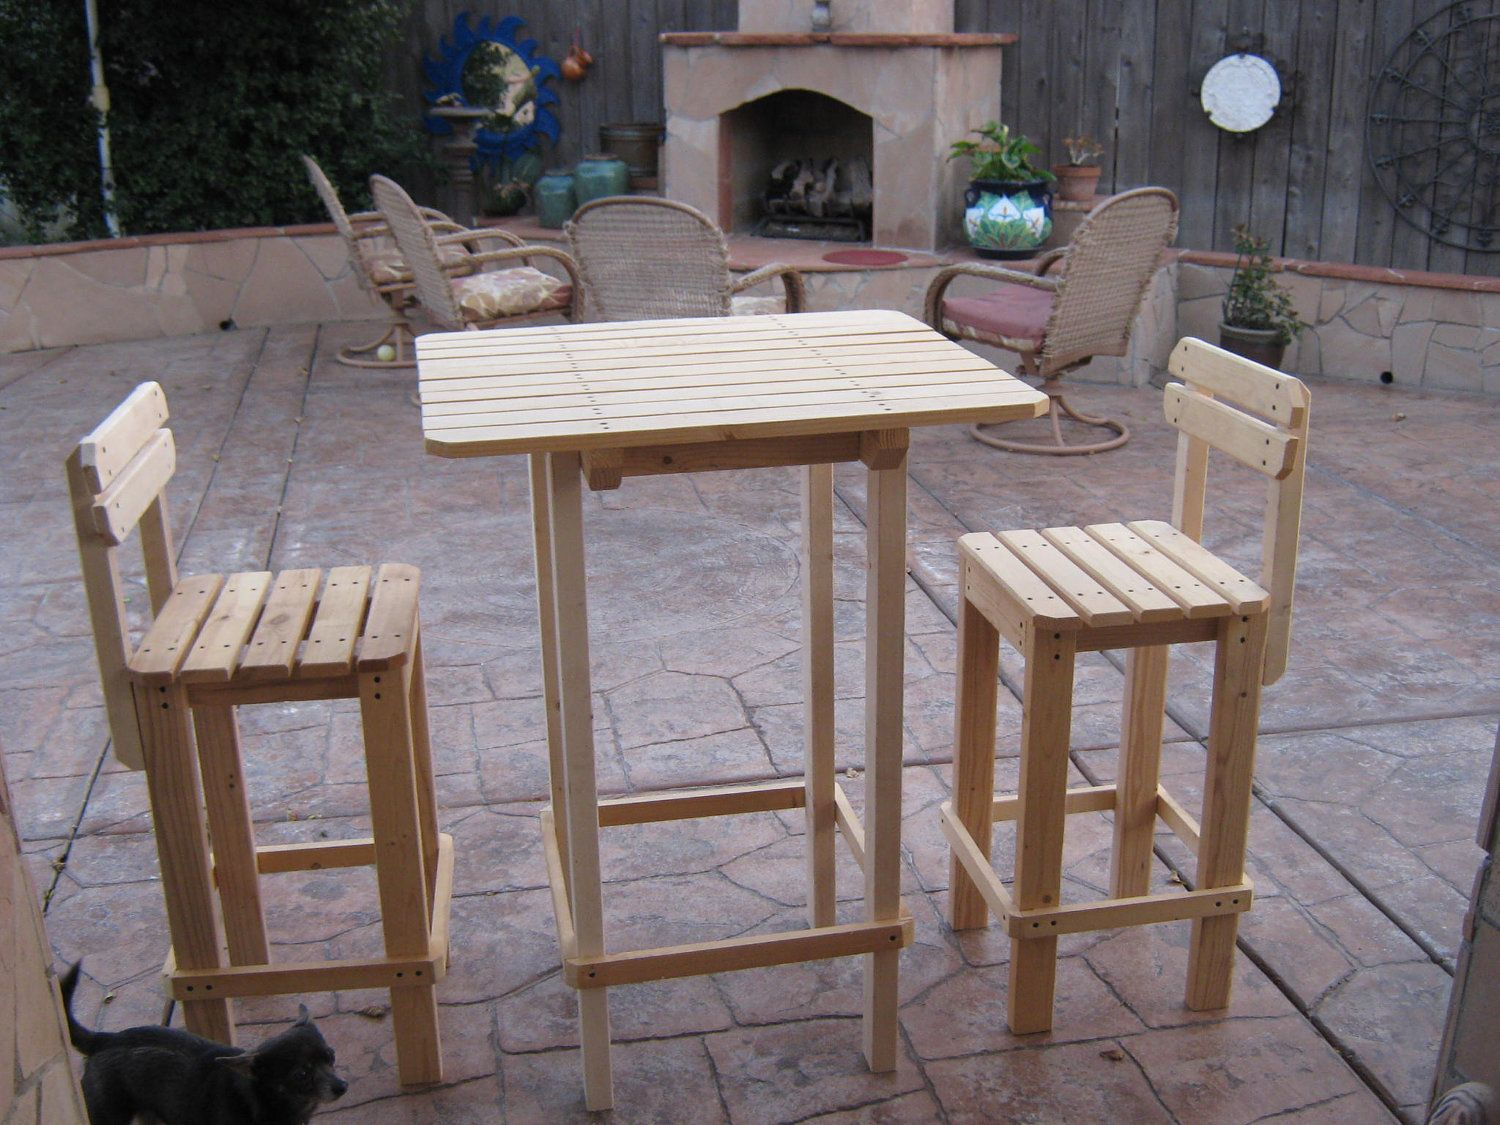 DIY Outdoor Furniture PLANS For Patio Lawn Or Garden   Bar Table And Stool  Set.